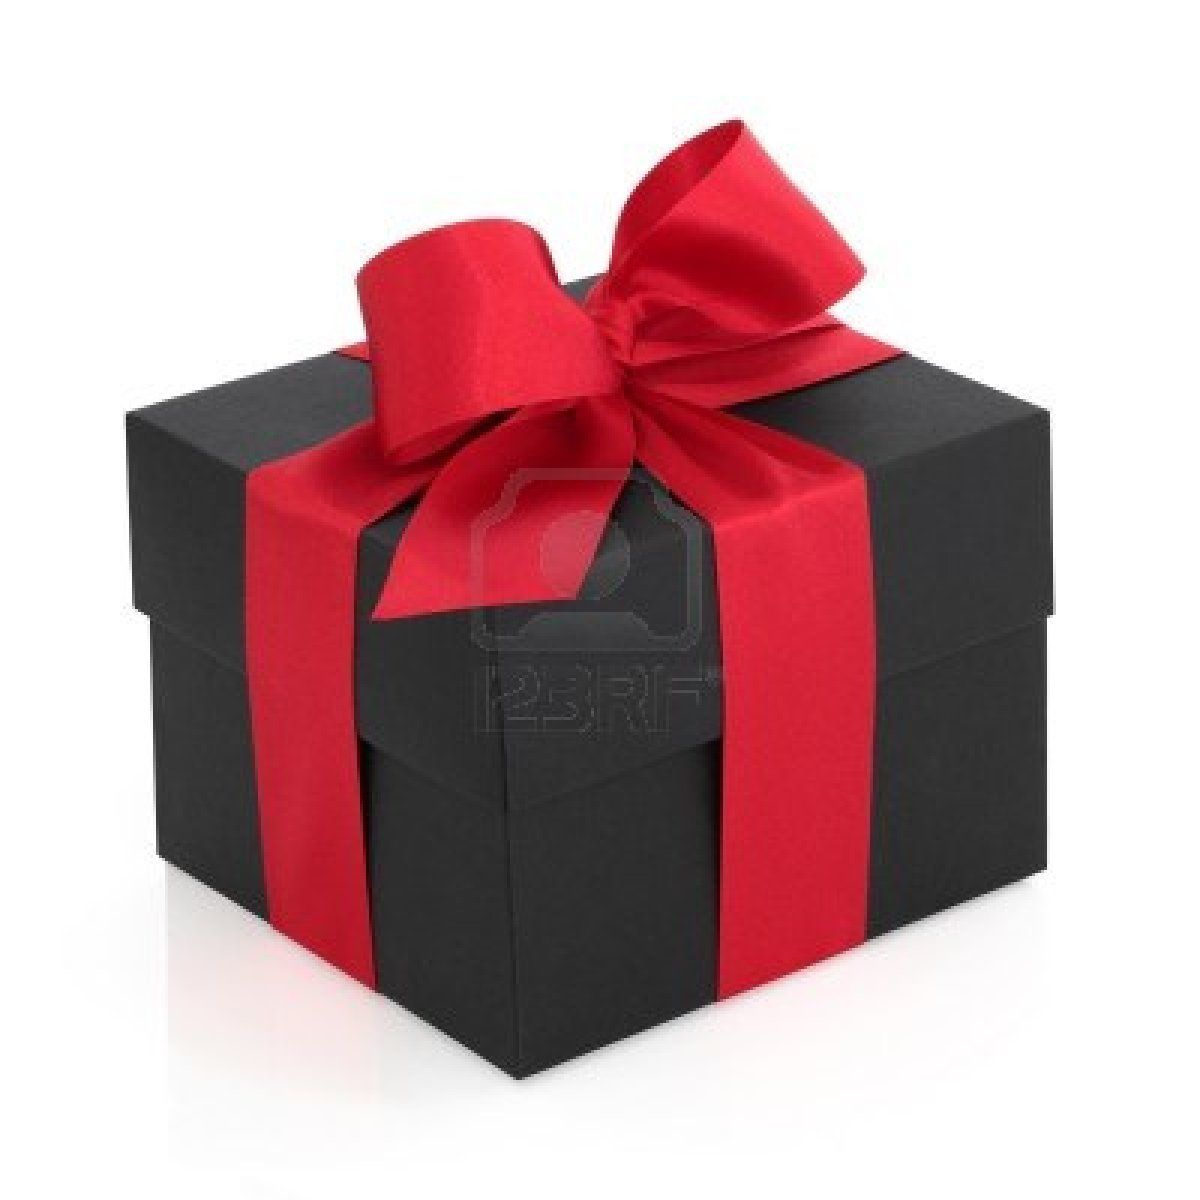 Black Gift Boxes Stock Photo Red And Black Black Gift Boxes Red Gift Box